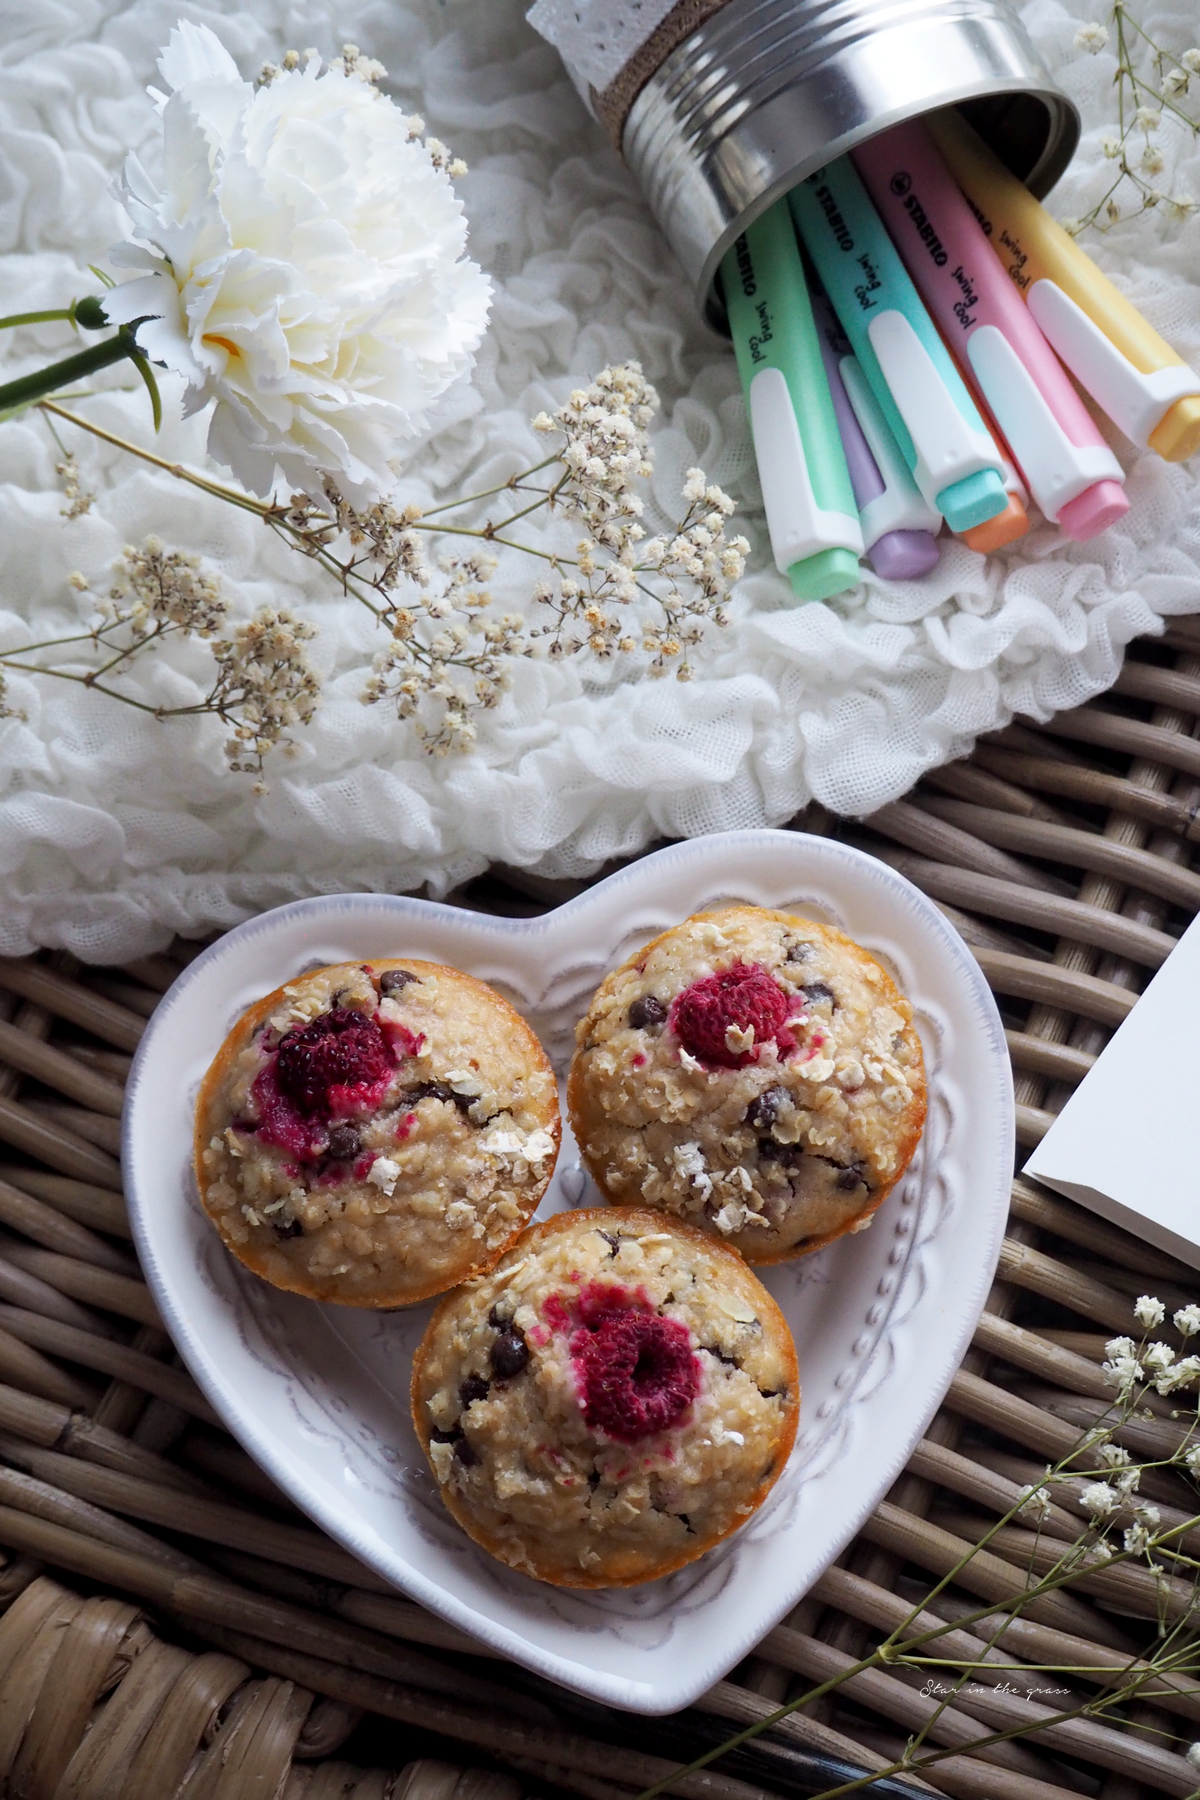 Recette muffins chocolat framboise